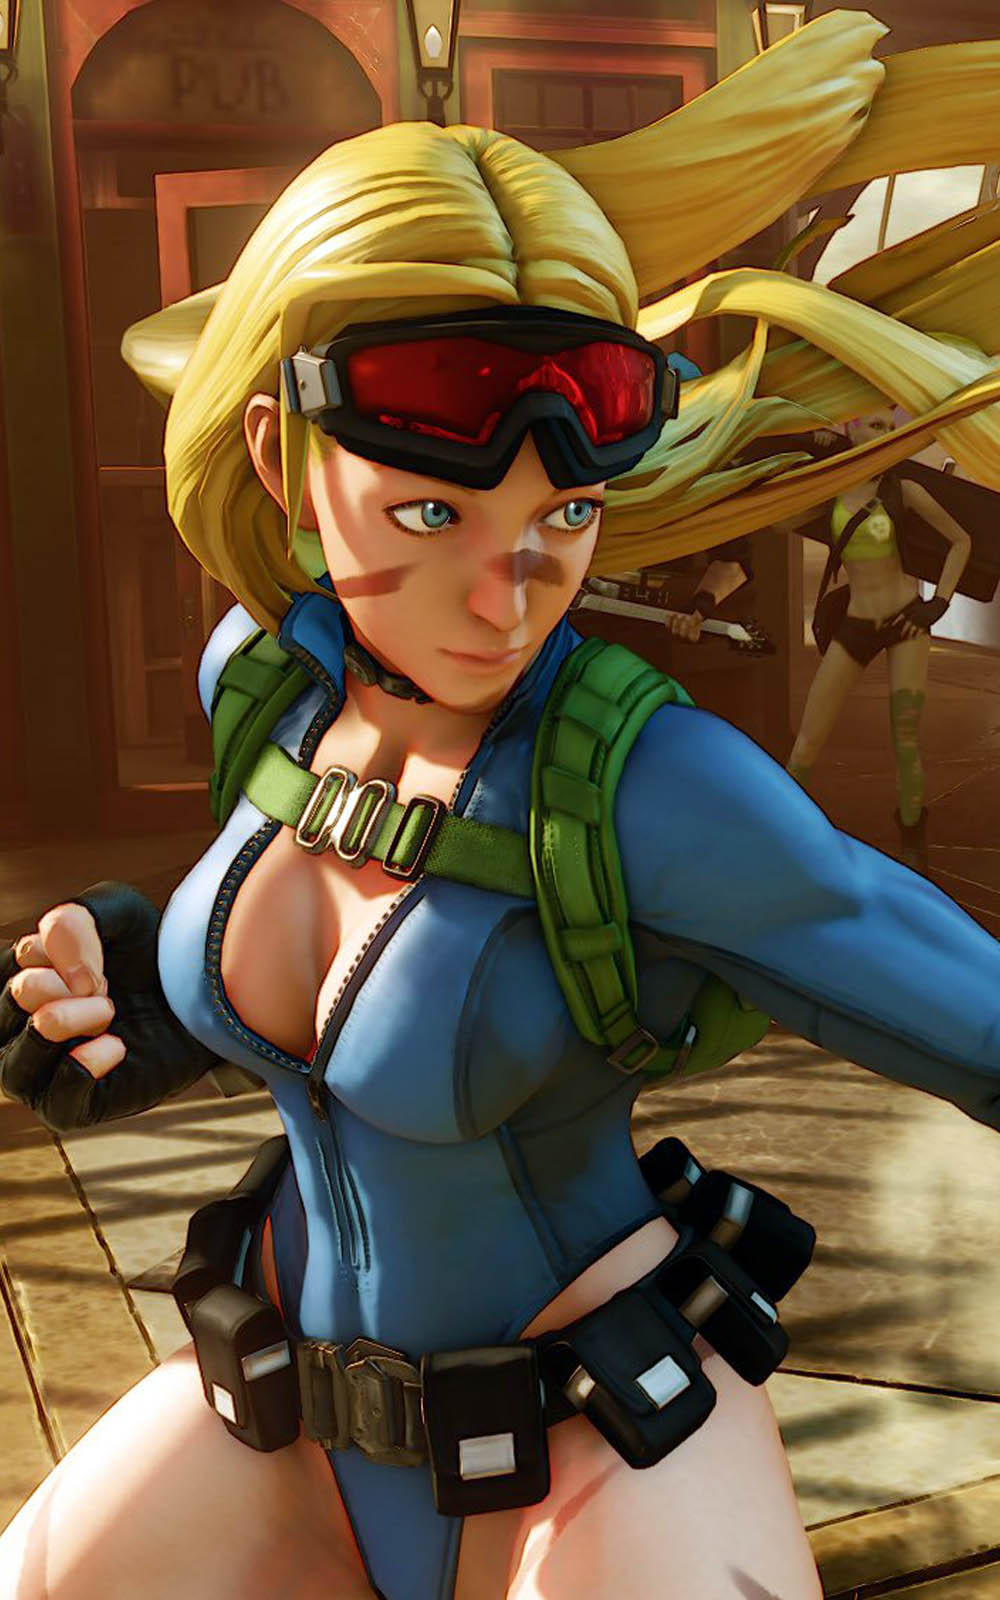 Wallpapers Girls Gamer Download Cammy Street Fighter 5 Hero Free Pure 4k Ultra Hd